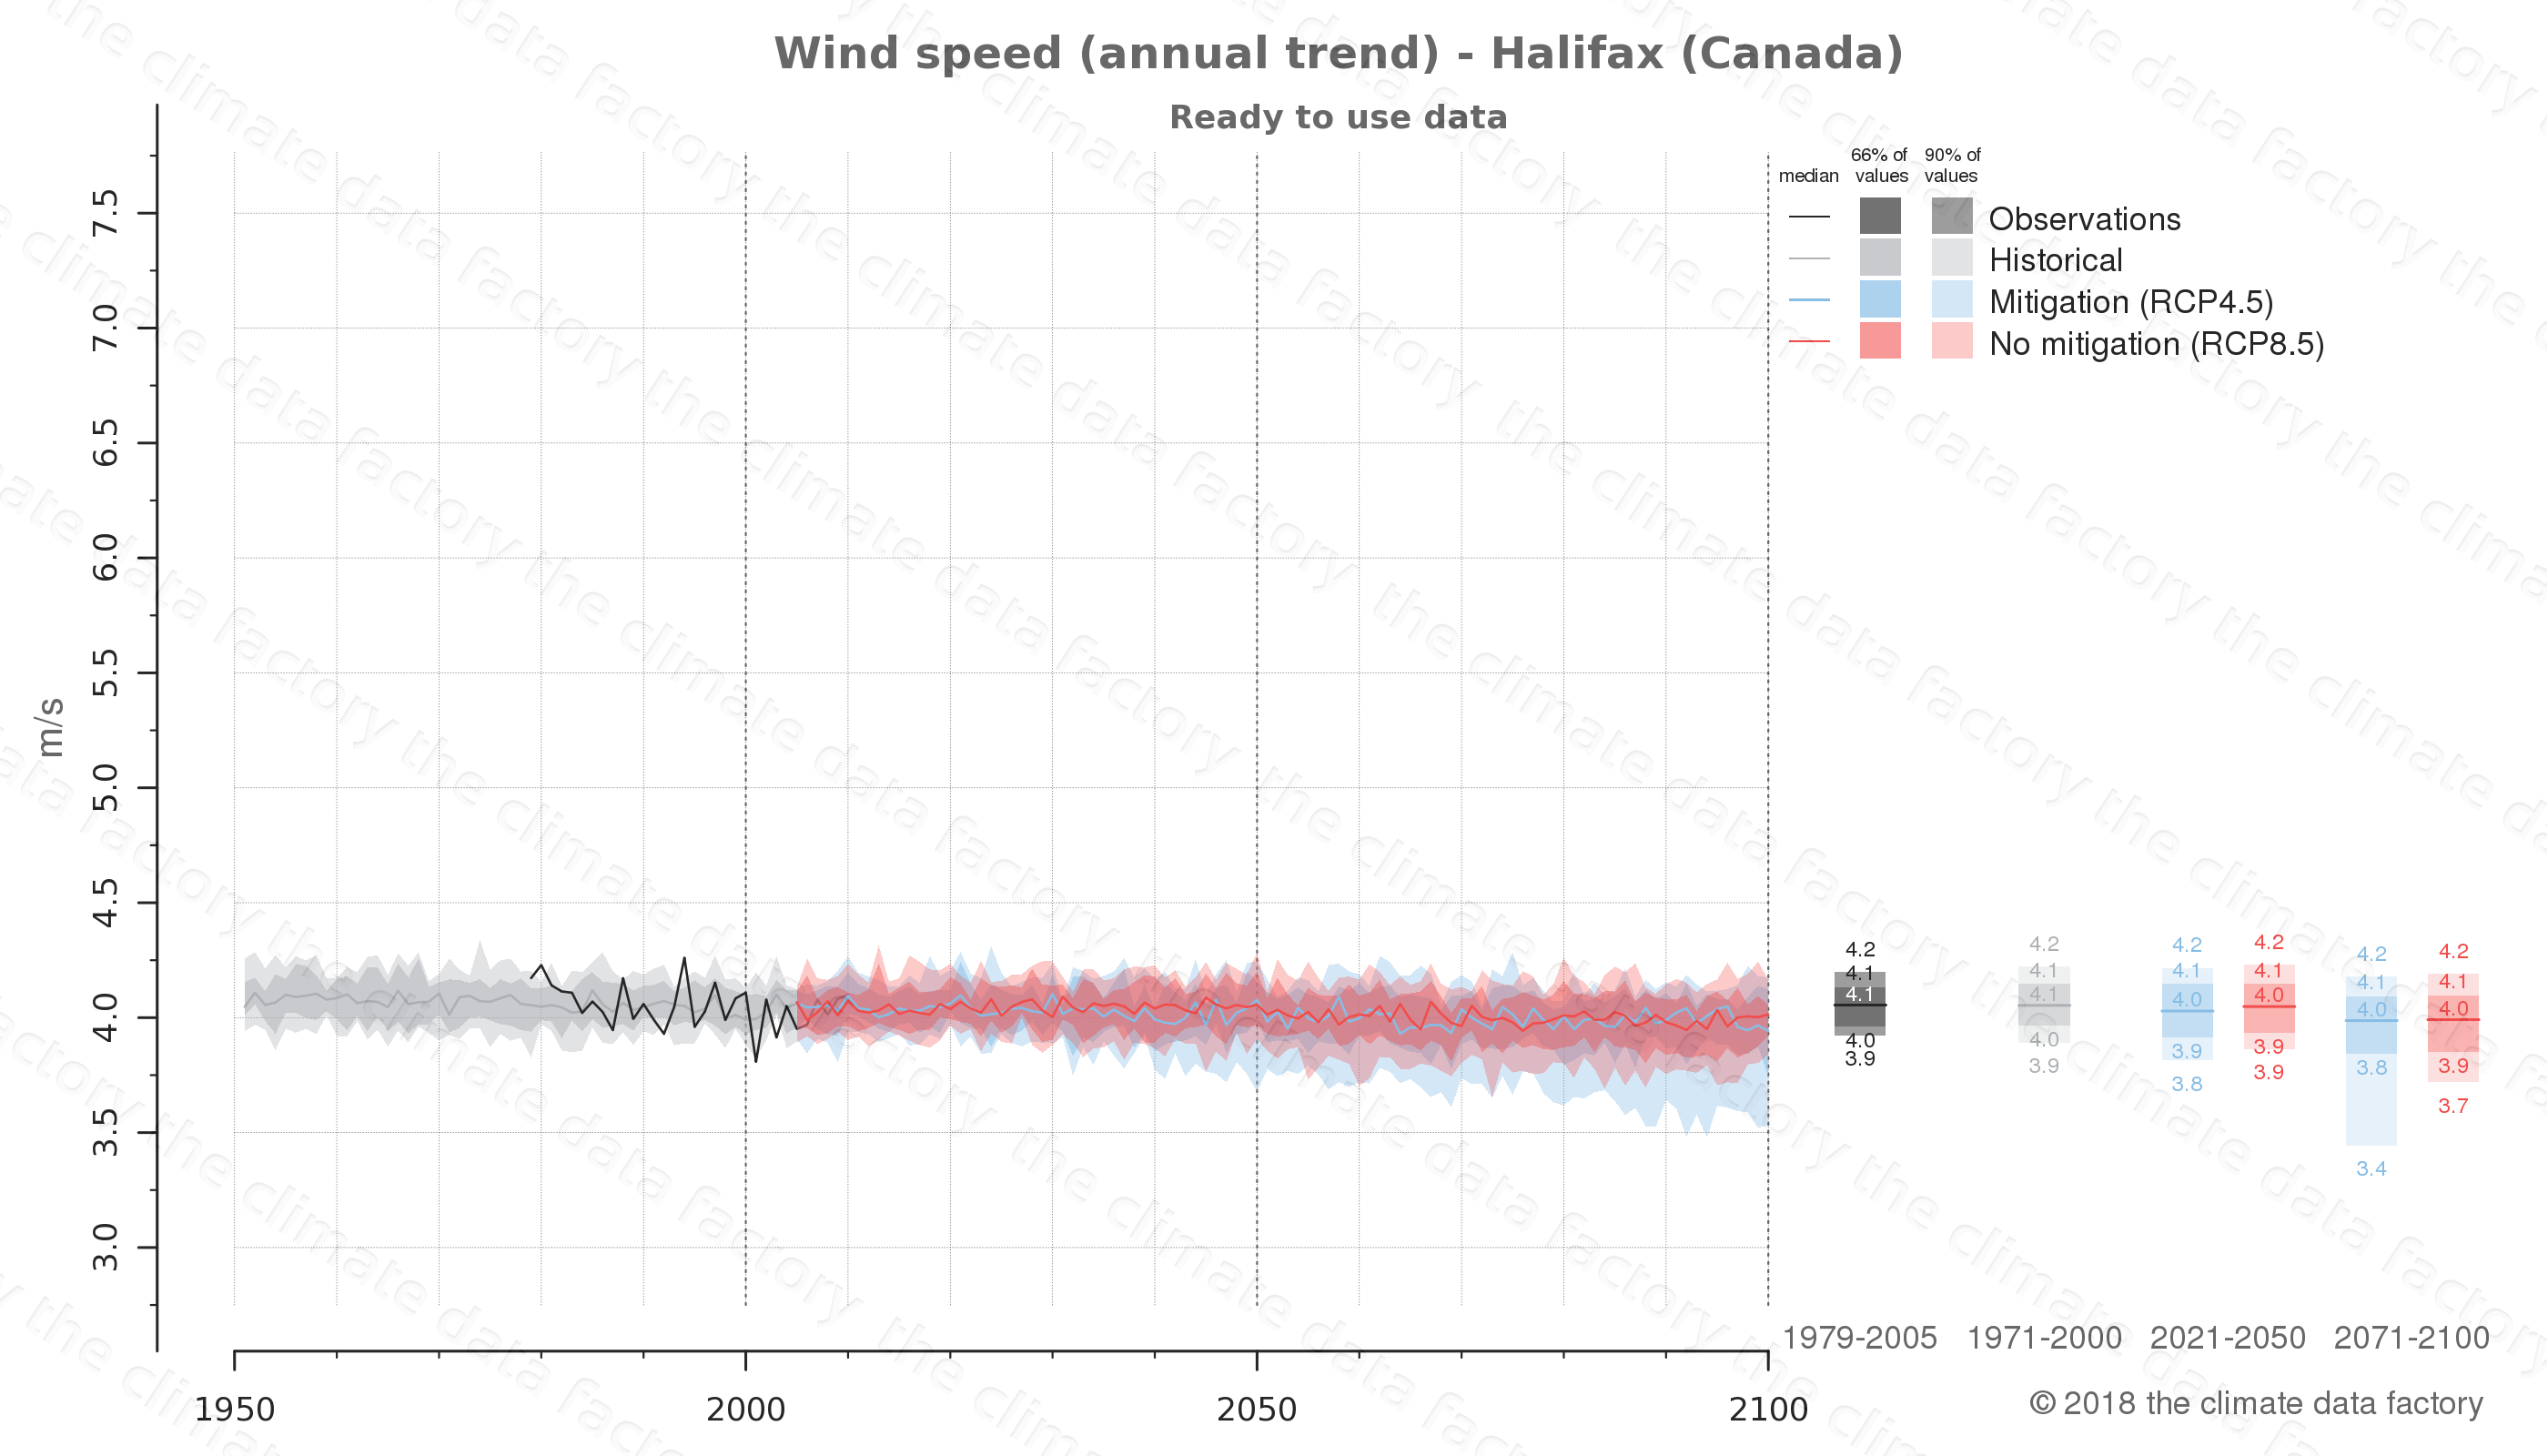 climate change data policy adaptation climate graph city data wind-speed halifax canada